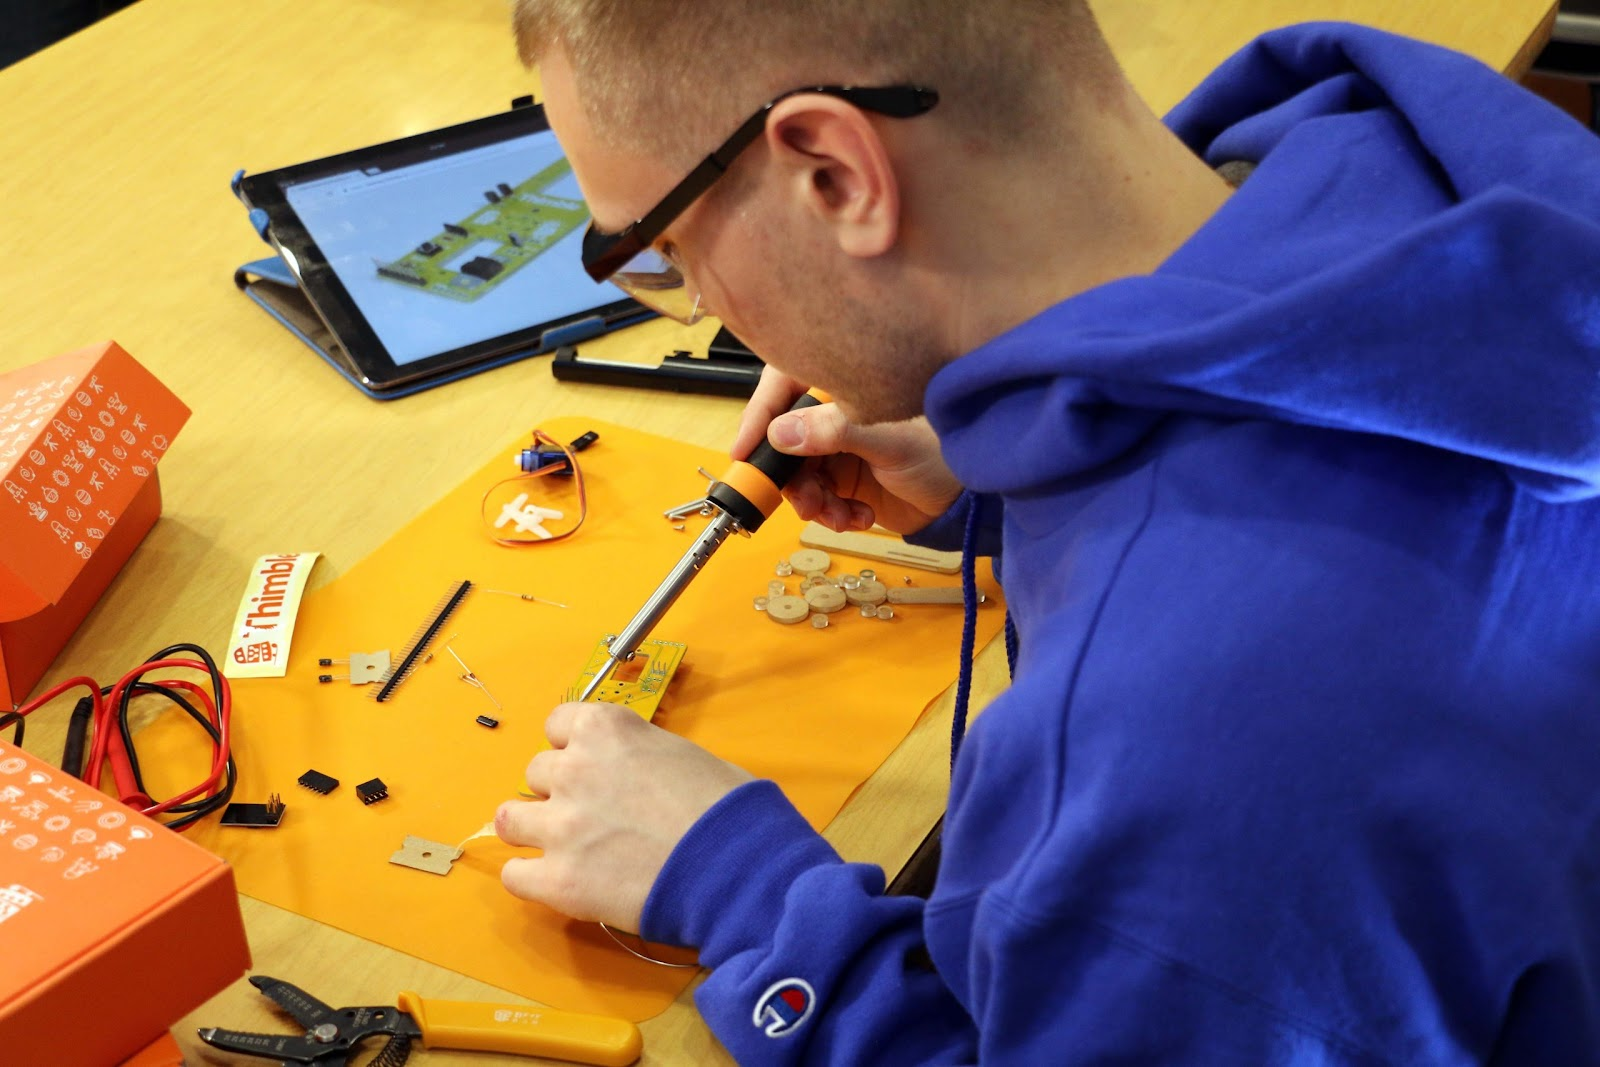 A boy in a blue sweatshirt and safety glasses sits at a table. He has a tablet that is open to the Thimble learning module as he builds a robotics project. An orange open Thimble box also sits on the table.